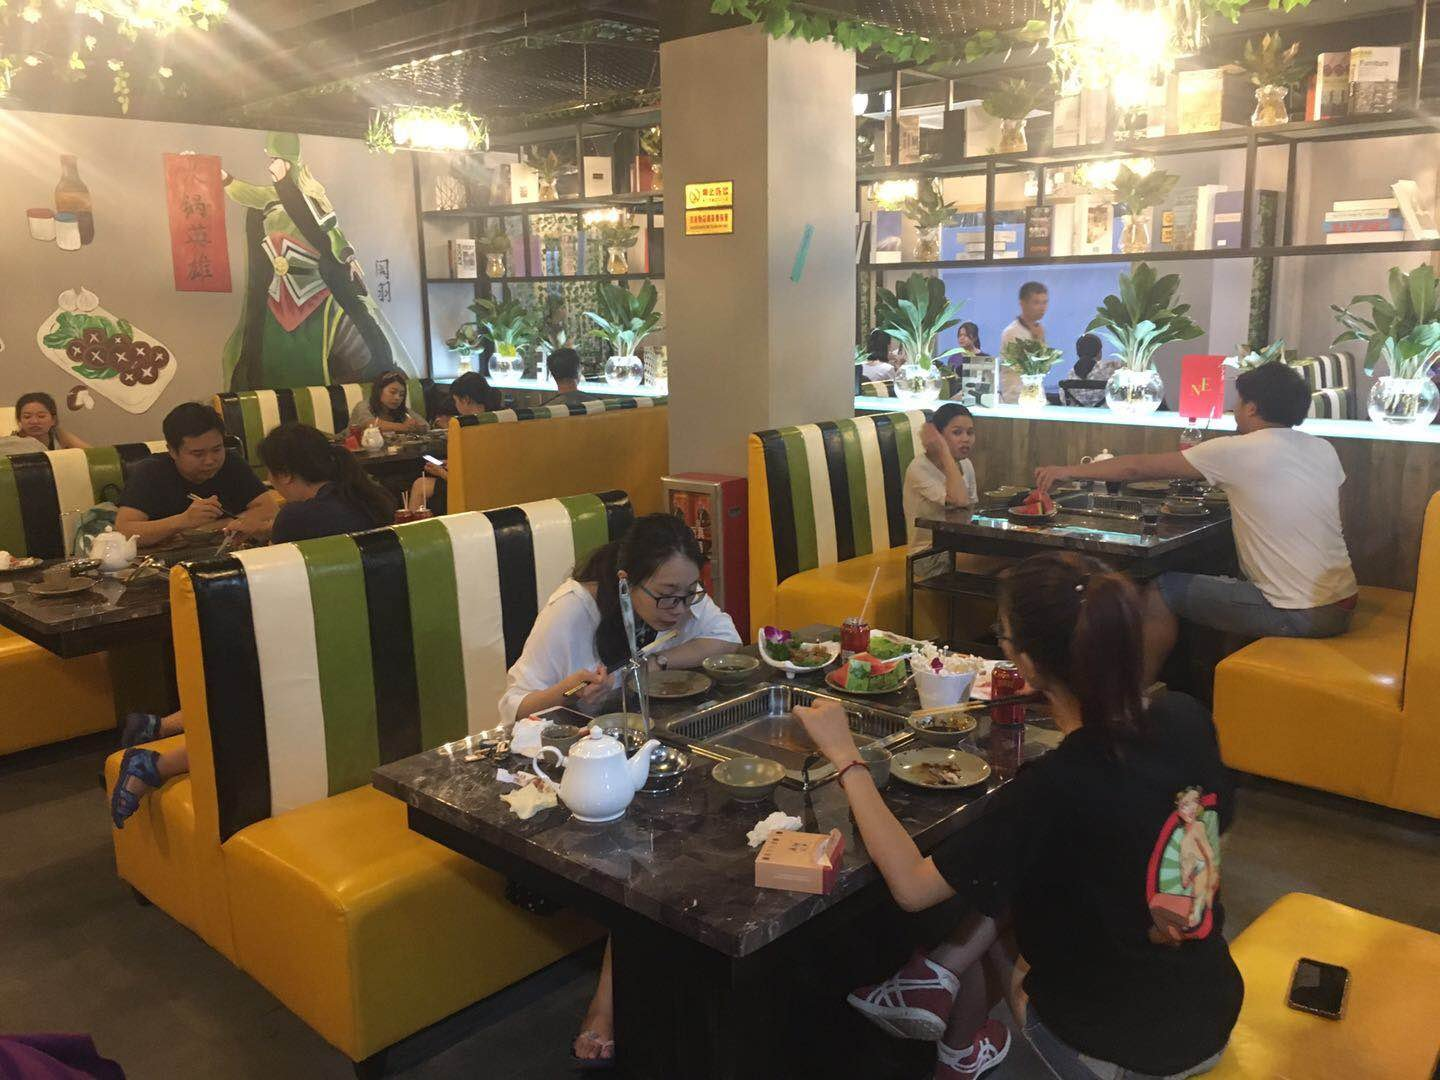 news-WINPAI-FASHION HOT POT restaurant-Guangzhou branch-img